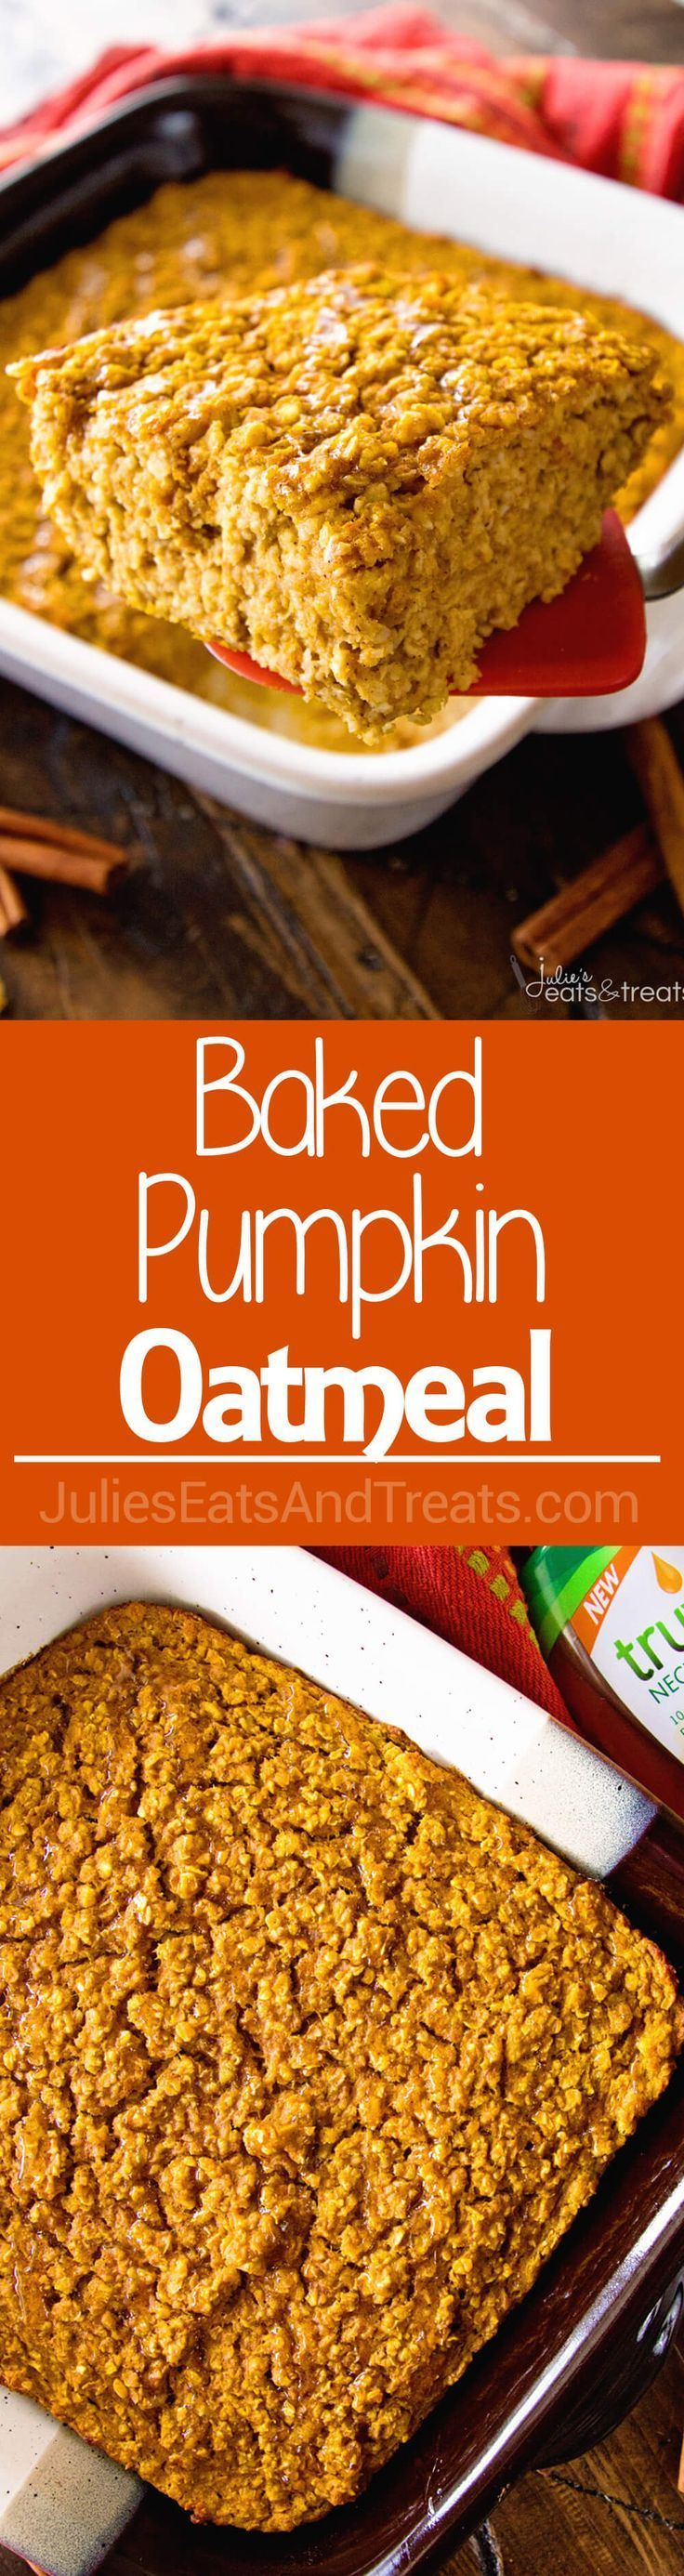 Baked Pumpkin Oatmeal ~ This Easy, Make-Ahead Baked Oatmeal is the Perfect Breakfast for Busy Mornings! Filled with Pumpkin, Oats and Spices to Fill You Up! via /julieseats/ (Make Ahead Breakfast Baking)